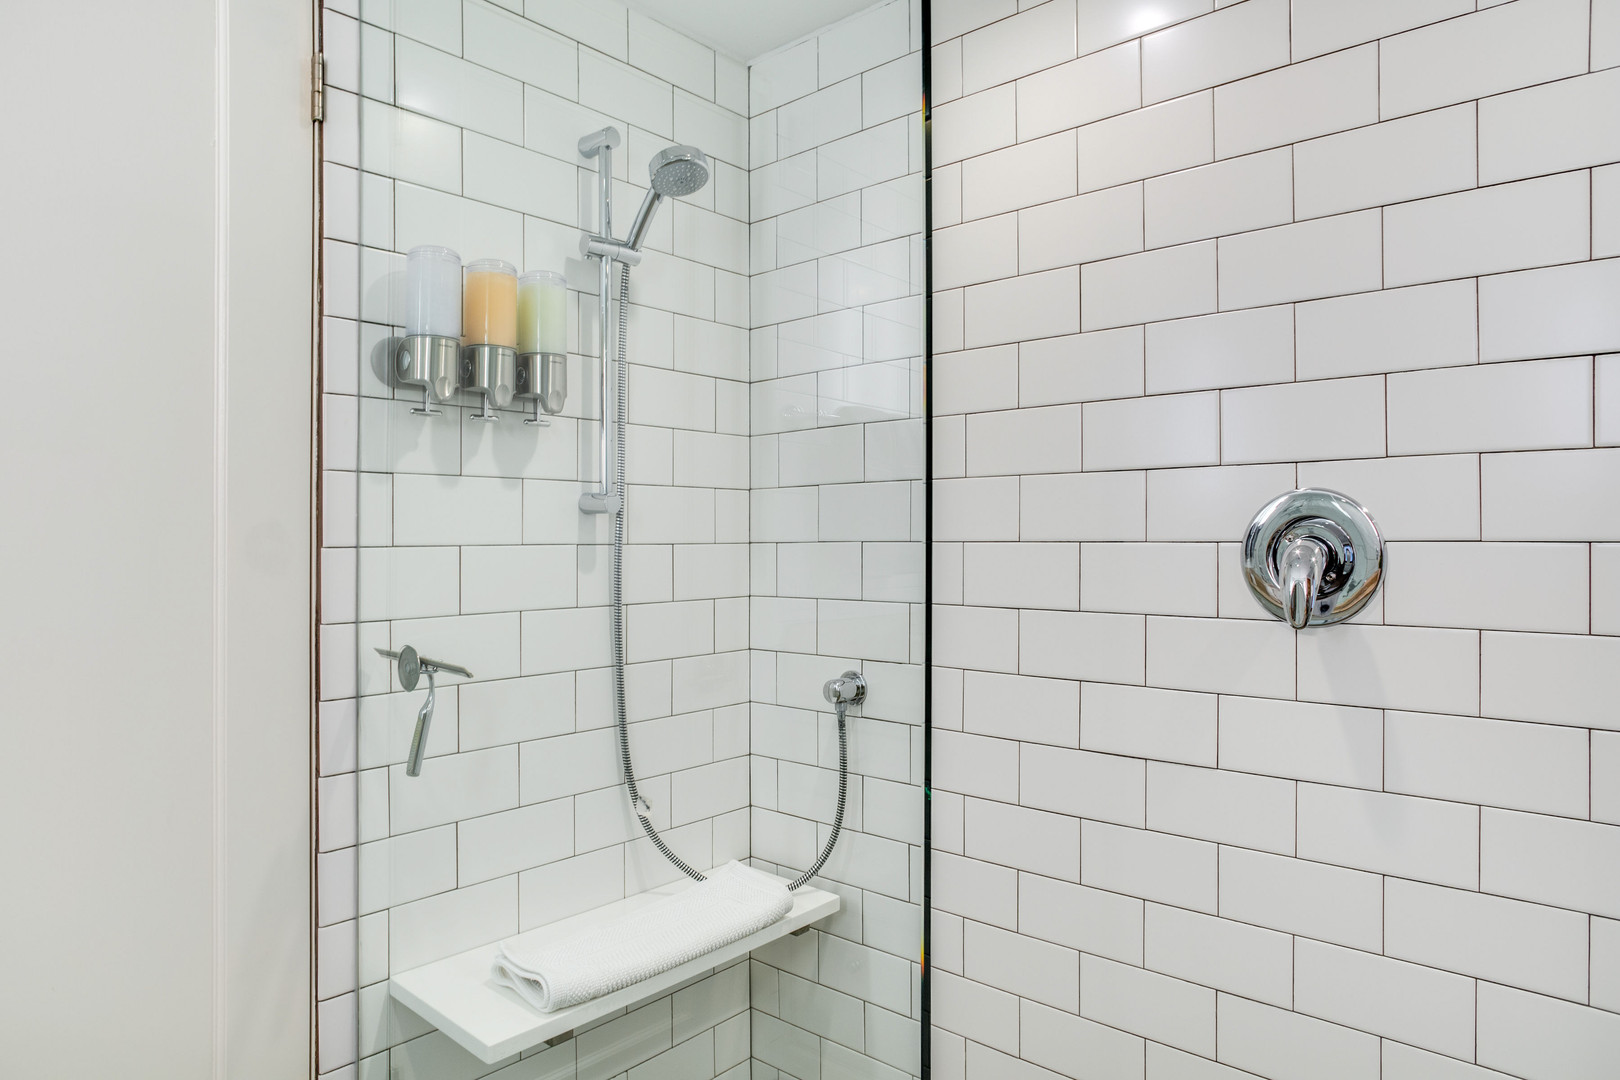 Walk-in Shower with Heated Floors